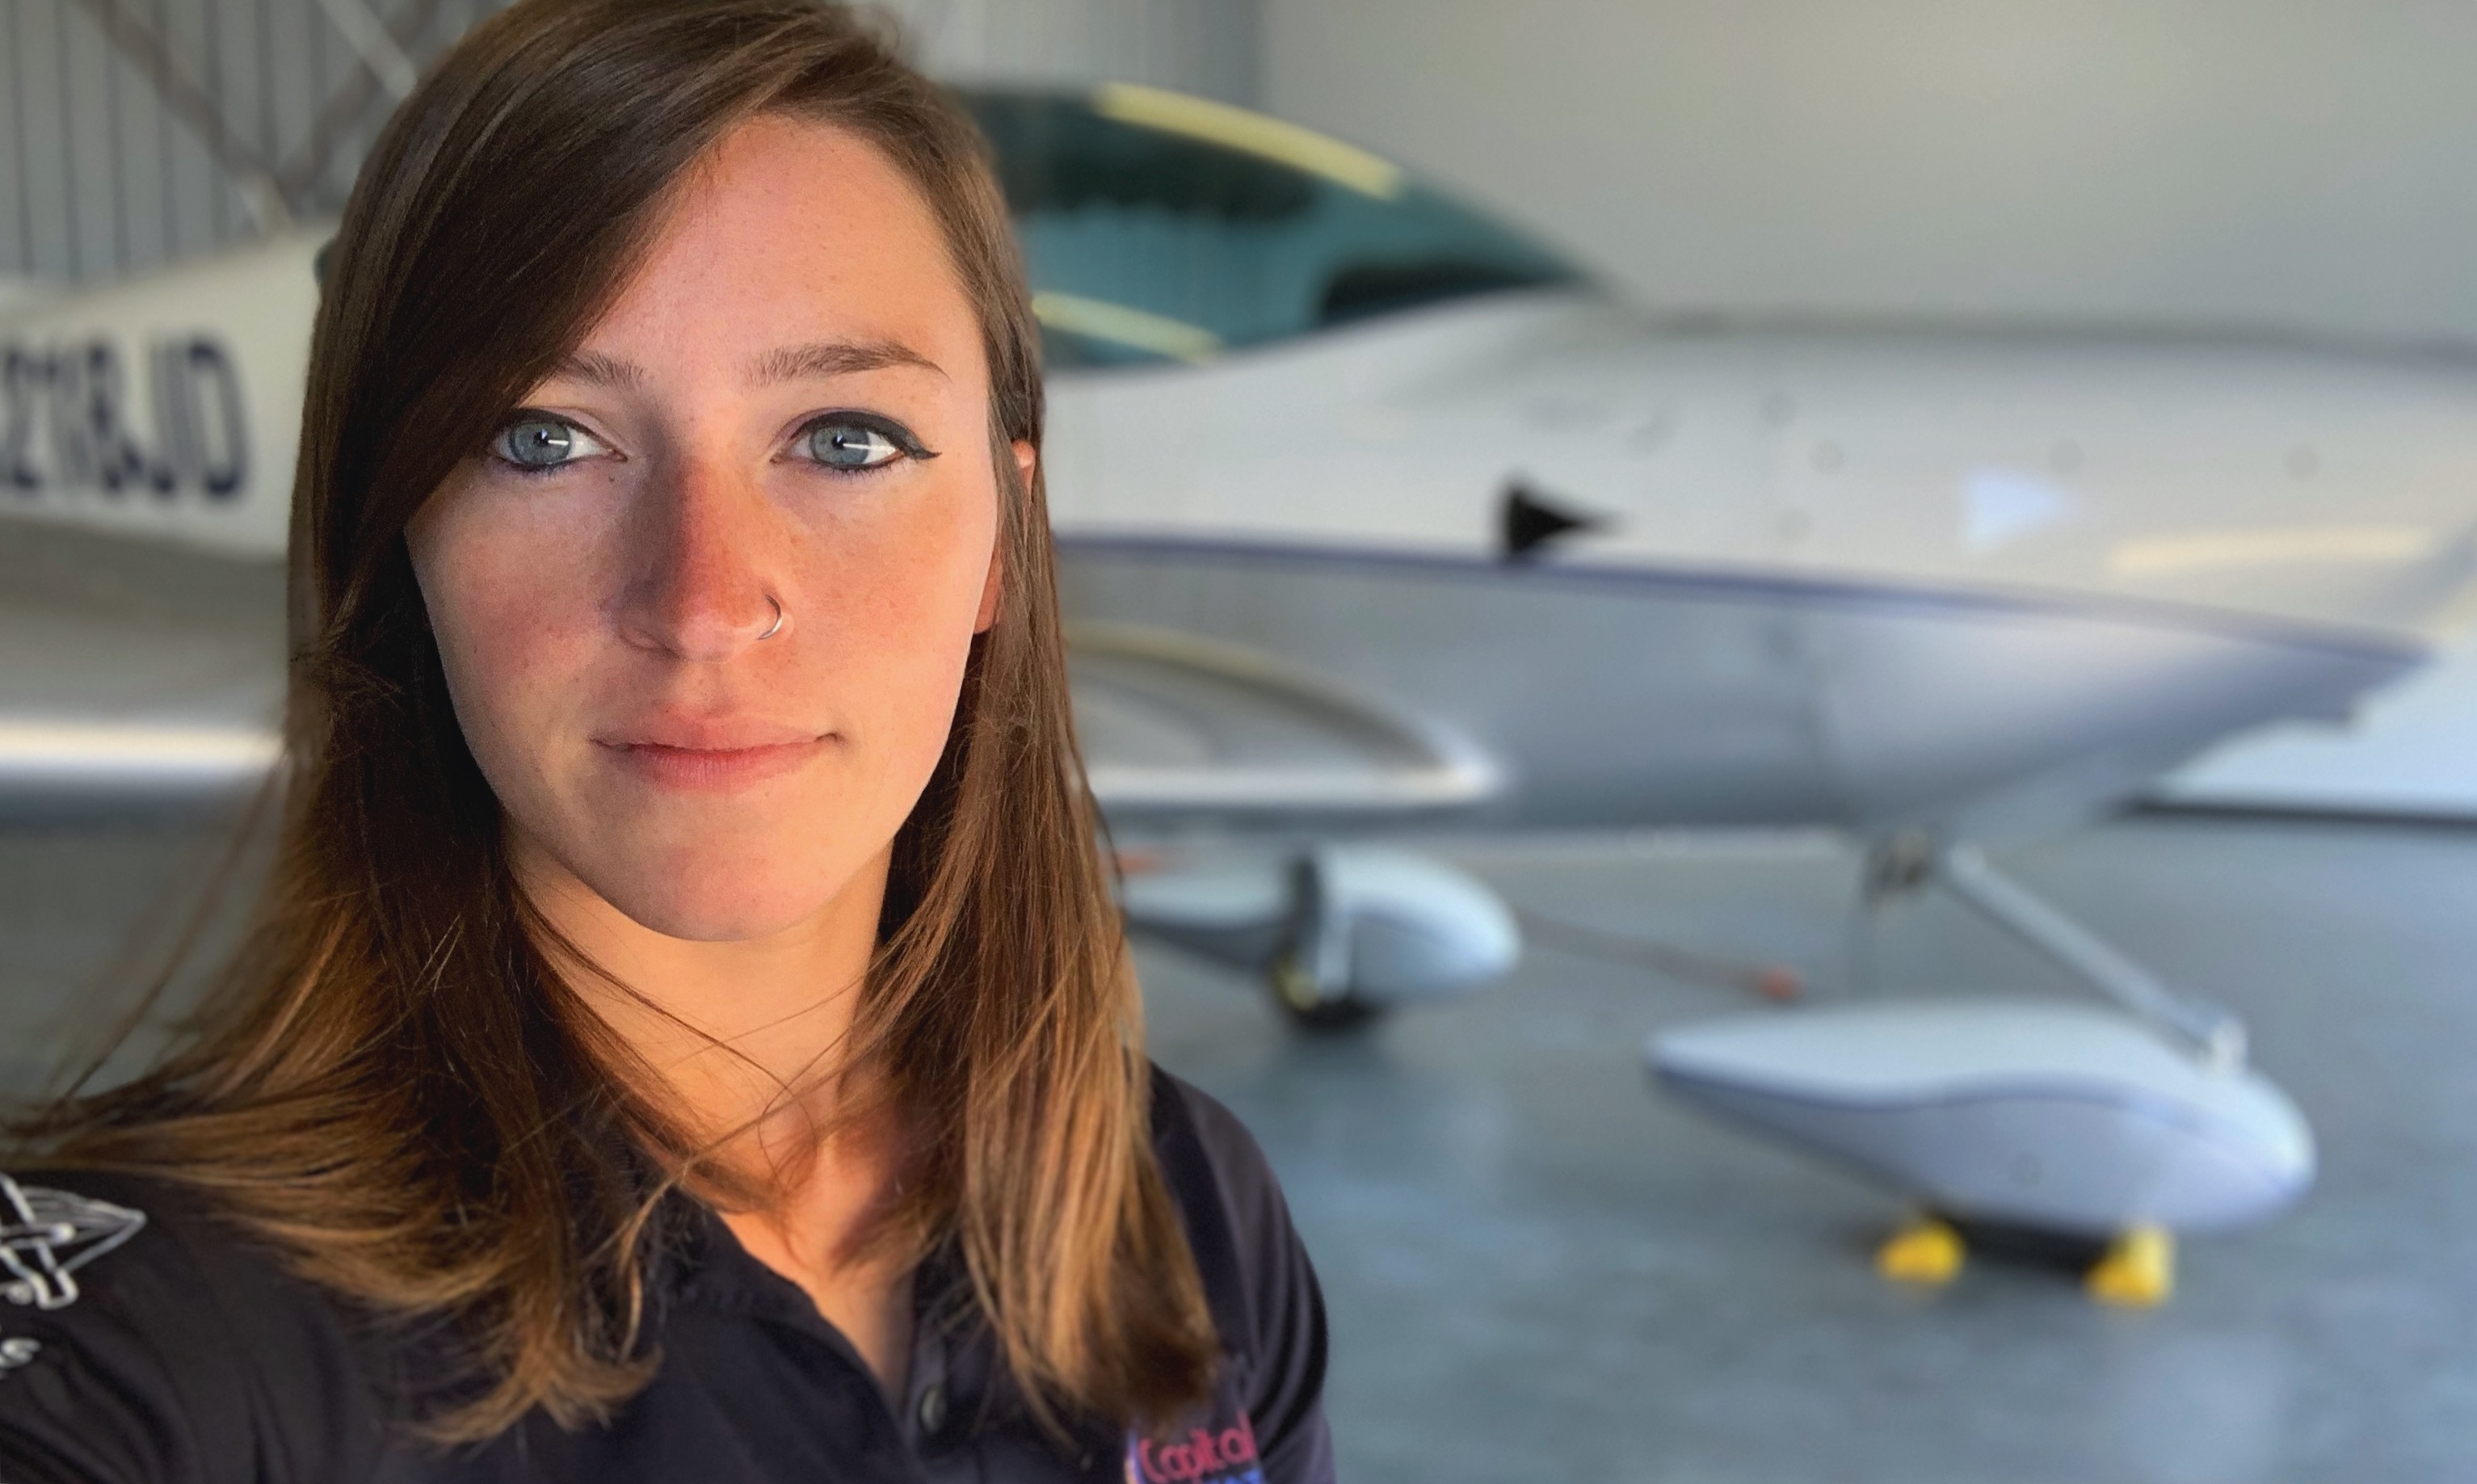 Instructors and Staff | Capital City Aviation